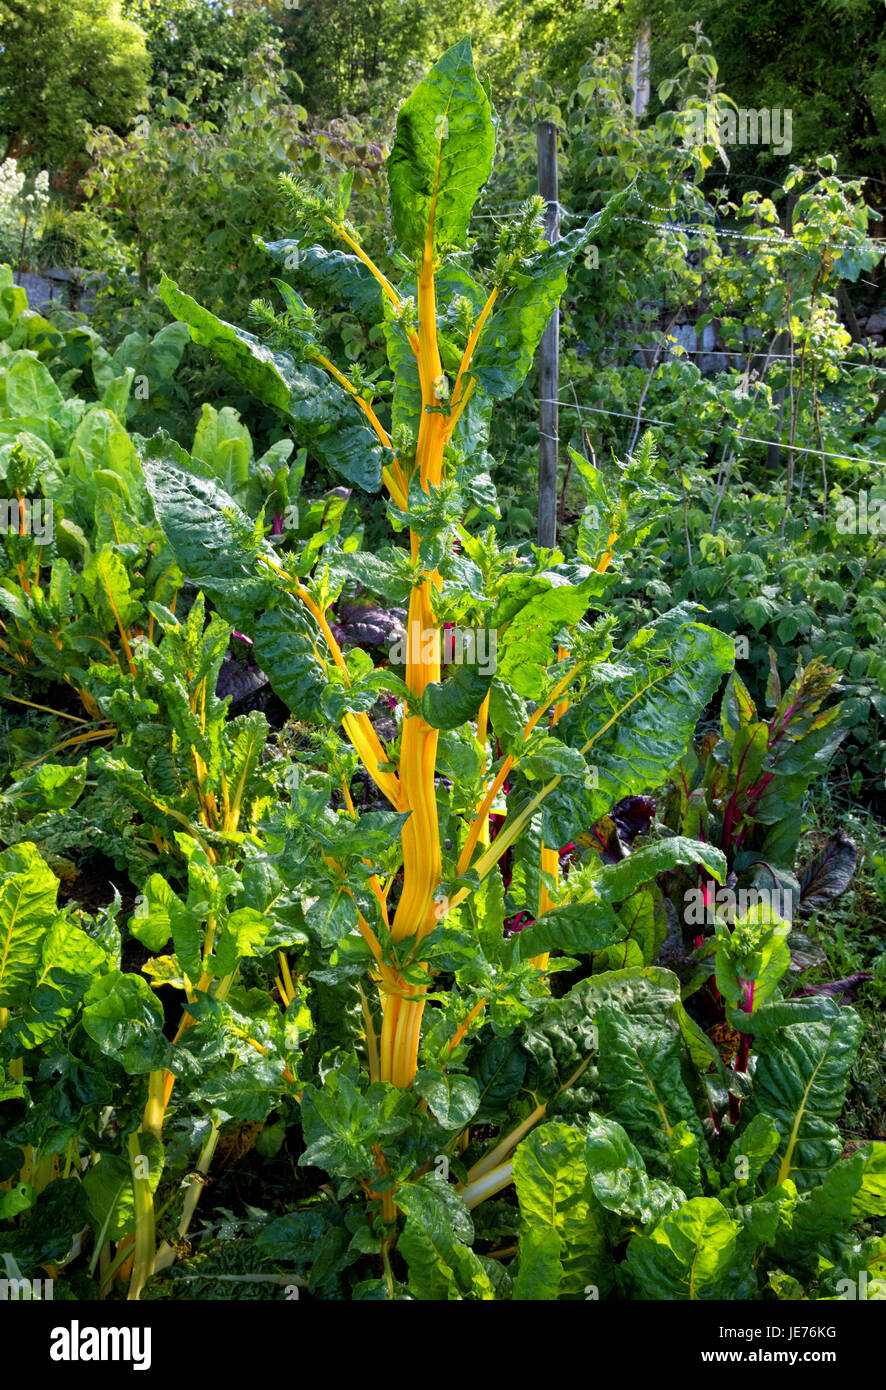 Organic rainbow chard or swiss chard ( Beta vulgaris ) with yellow leaf stalks growing in a Spanish vegetable garden - Stock Image